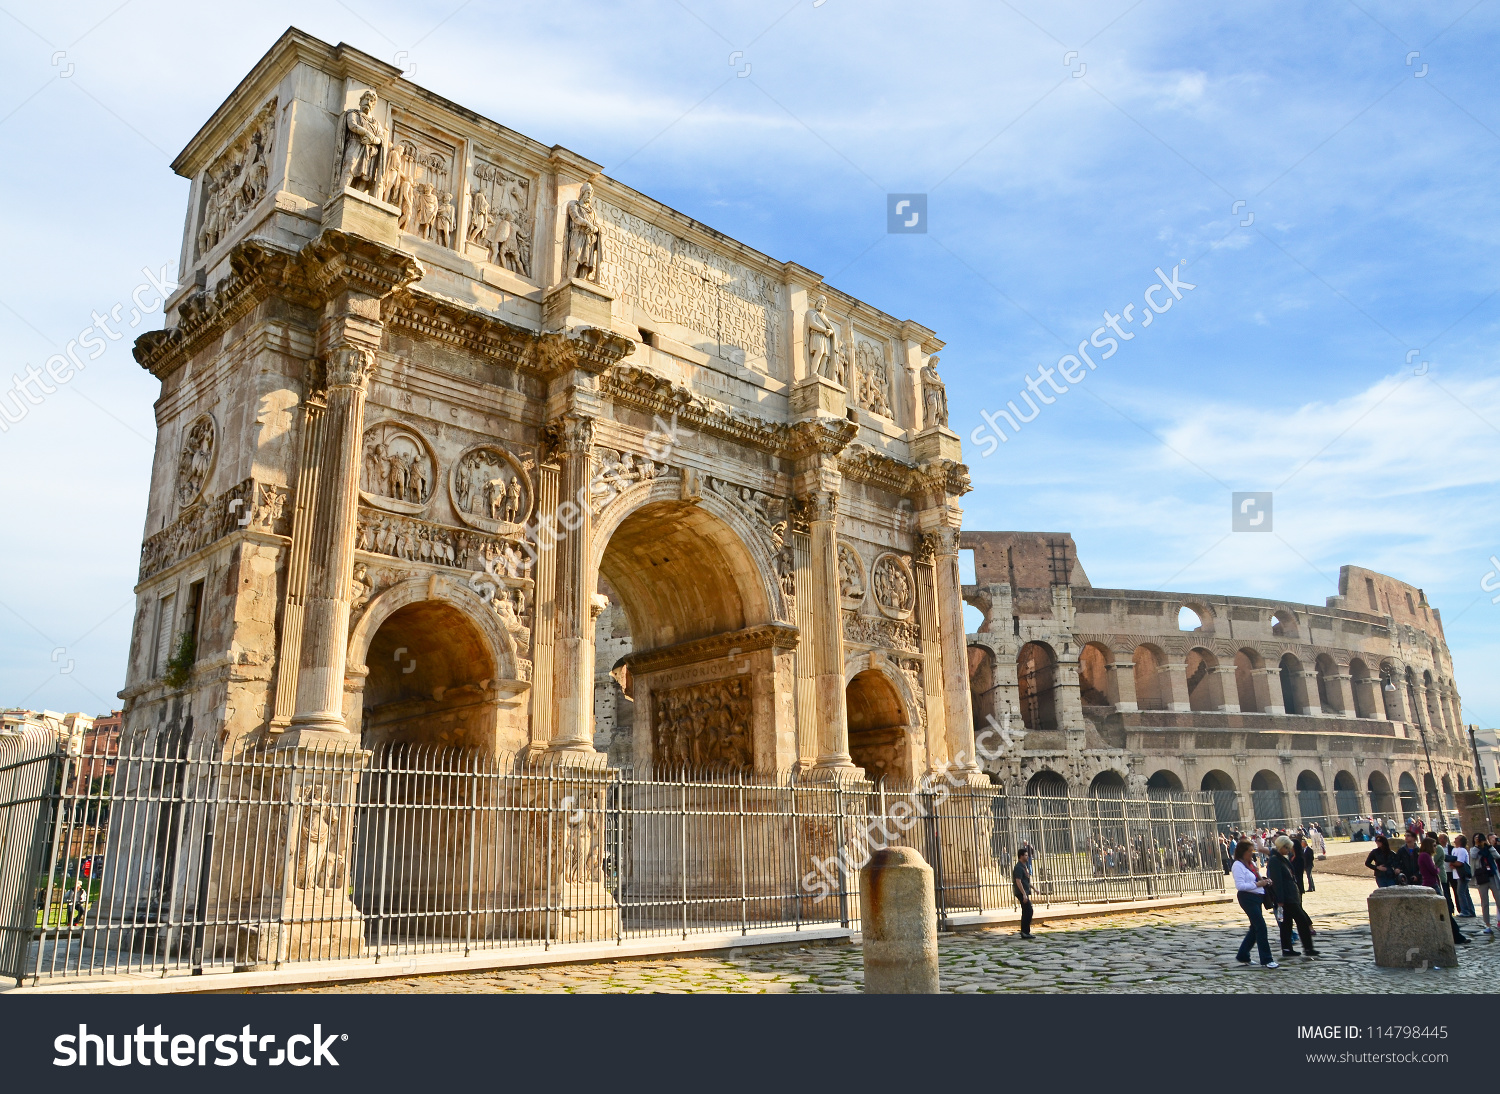 Arch Constantine Coliseum Background Rome Italy Stock Photo.